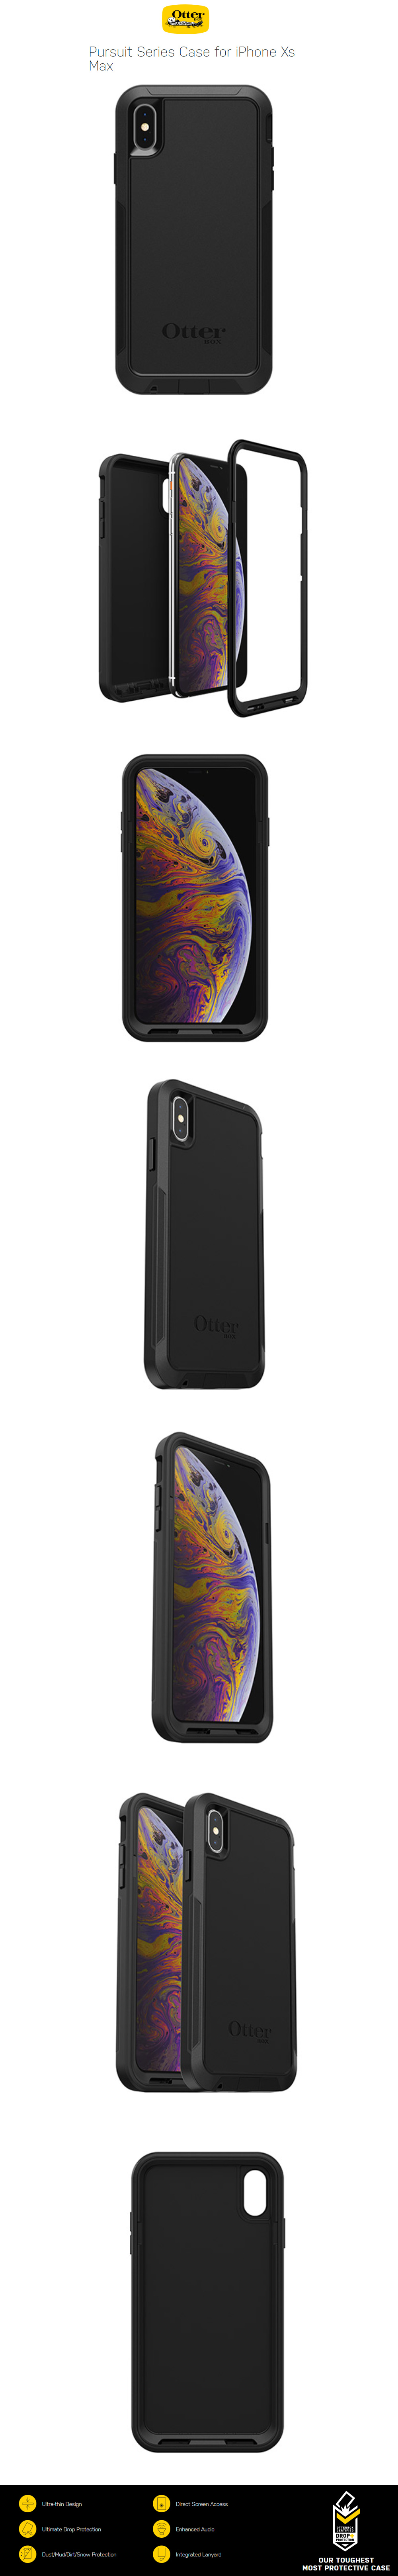 new concept 86503 db3fc Otterbox Pursuit Series Case for iPhone Xs Max (Black)